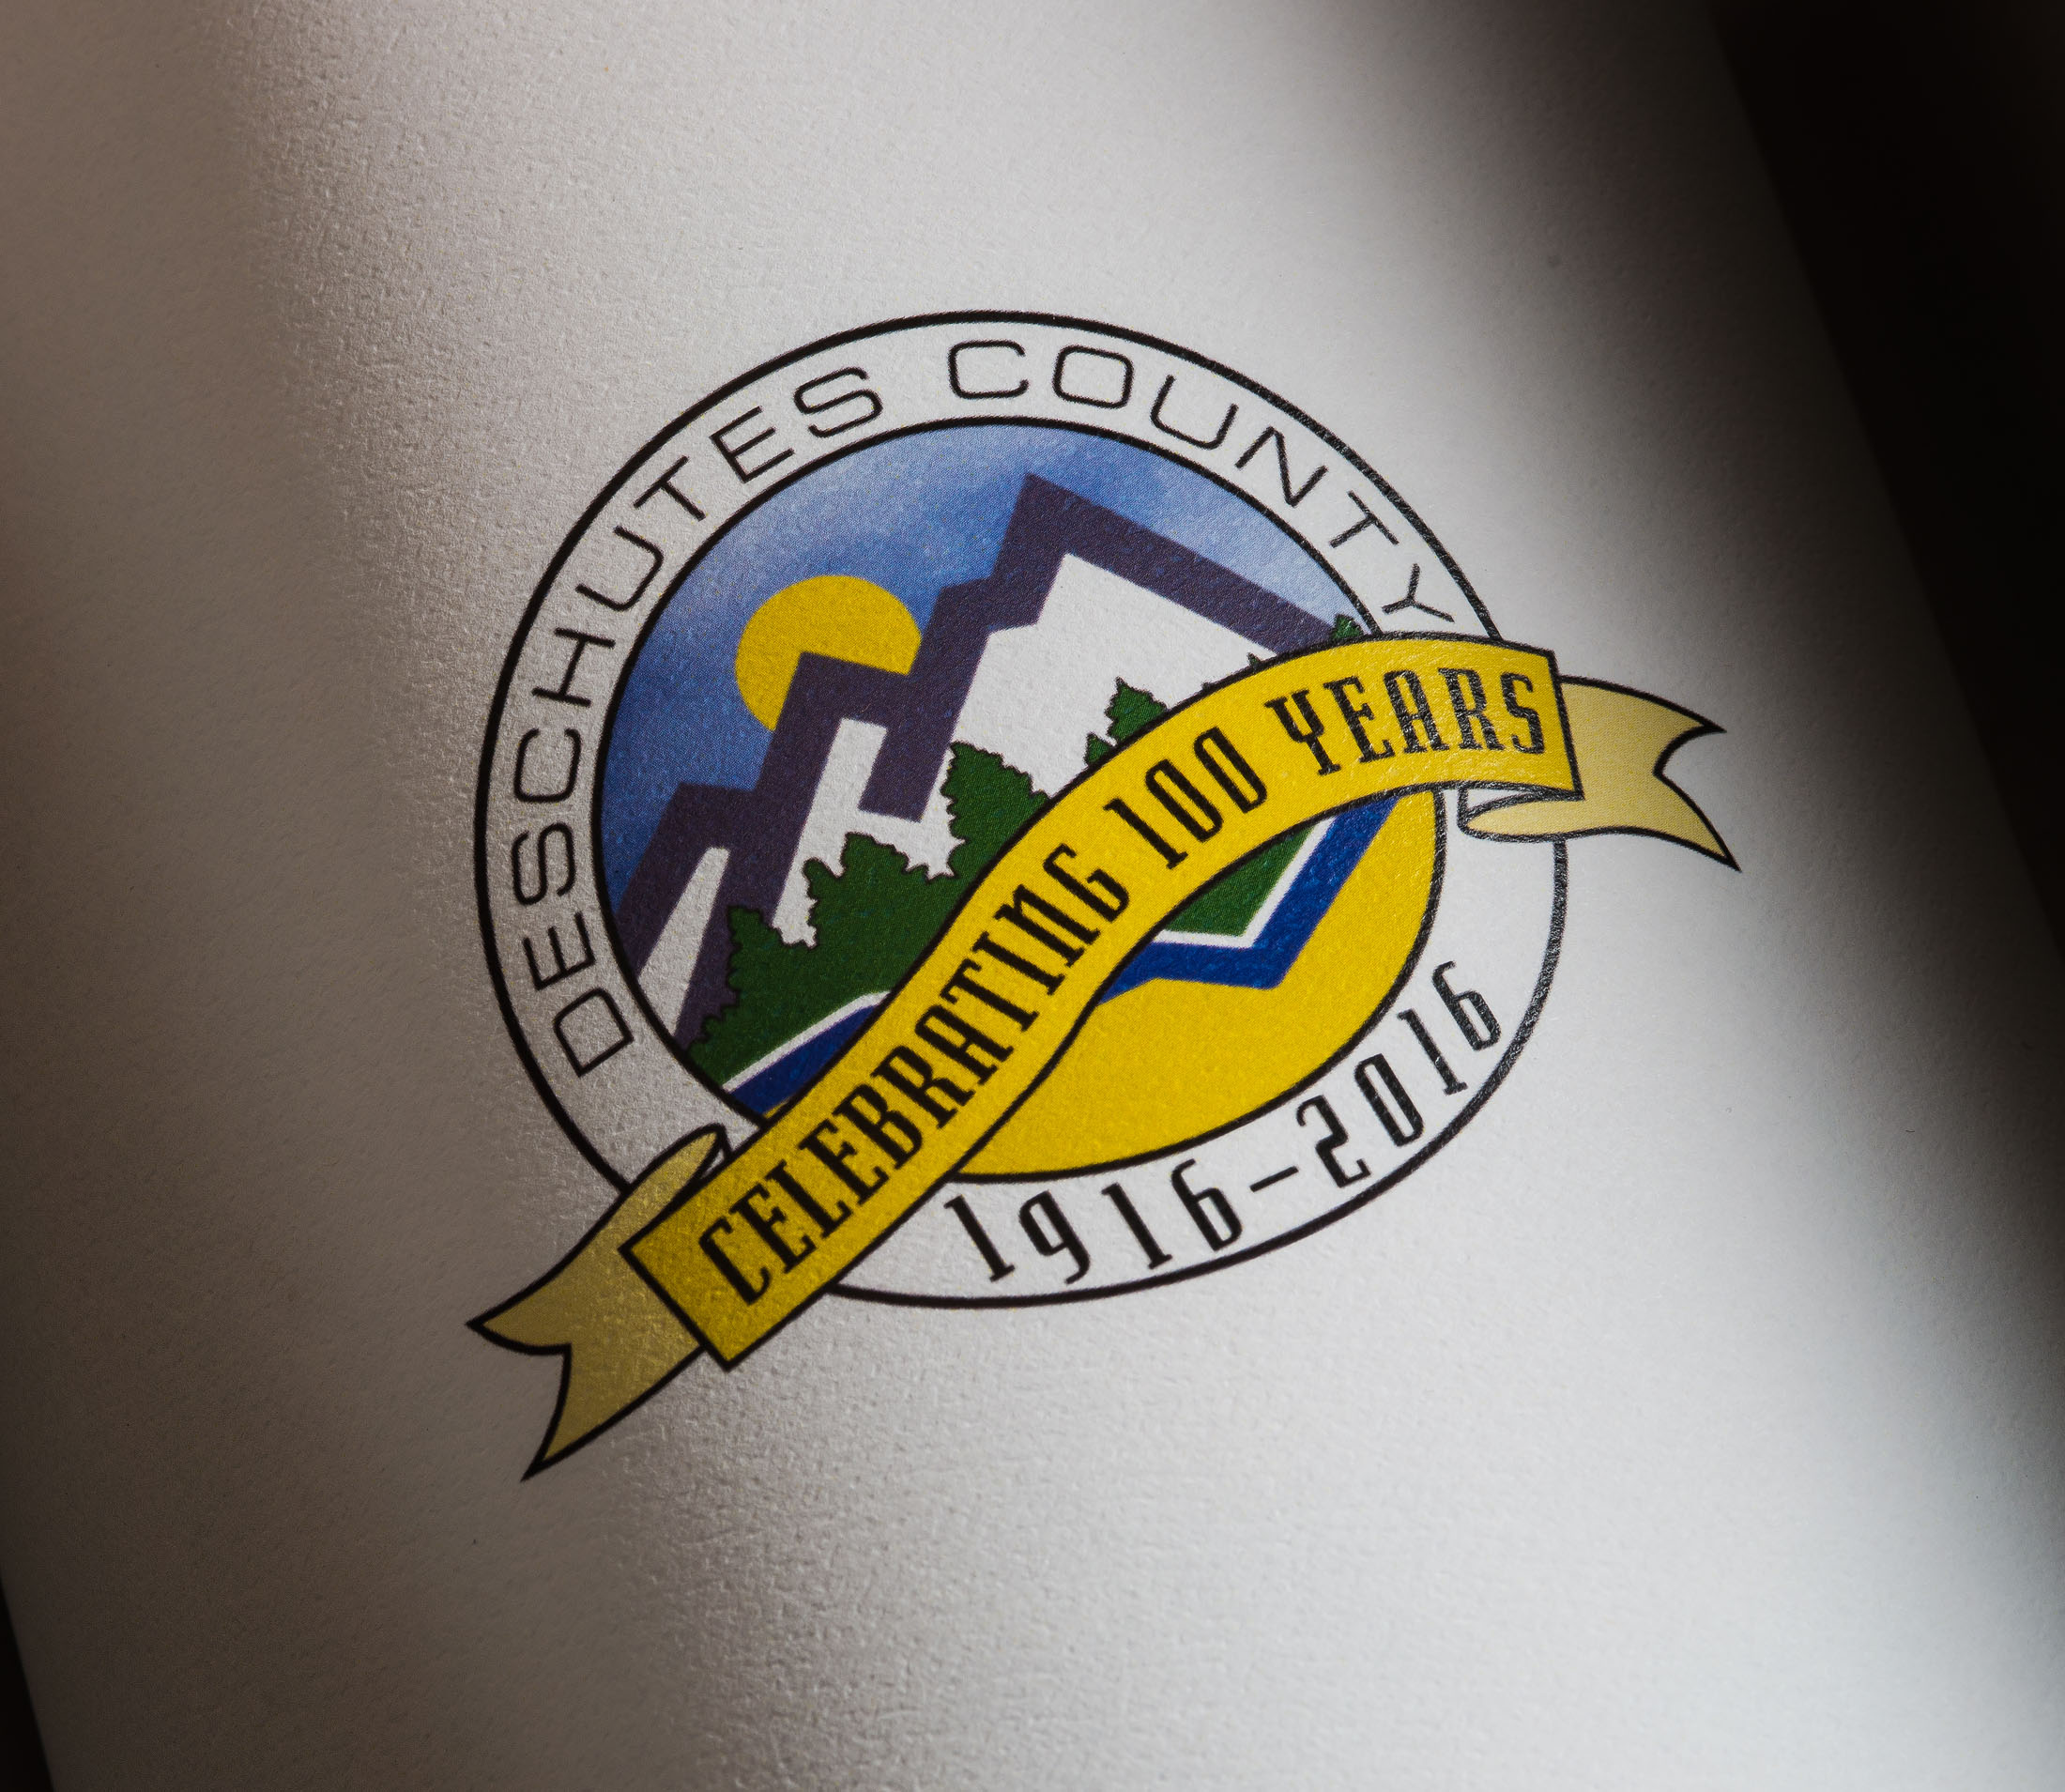 Deschutes County logo